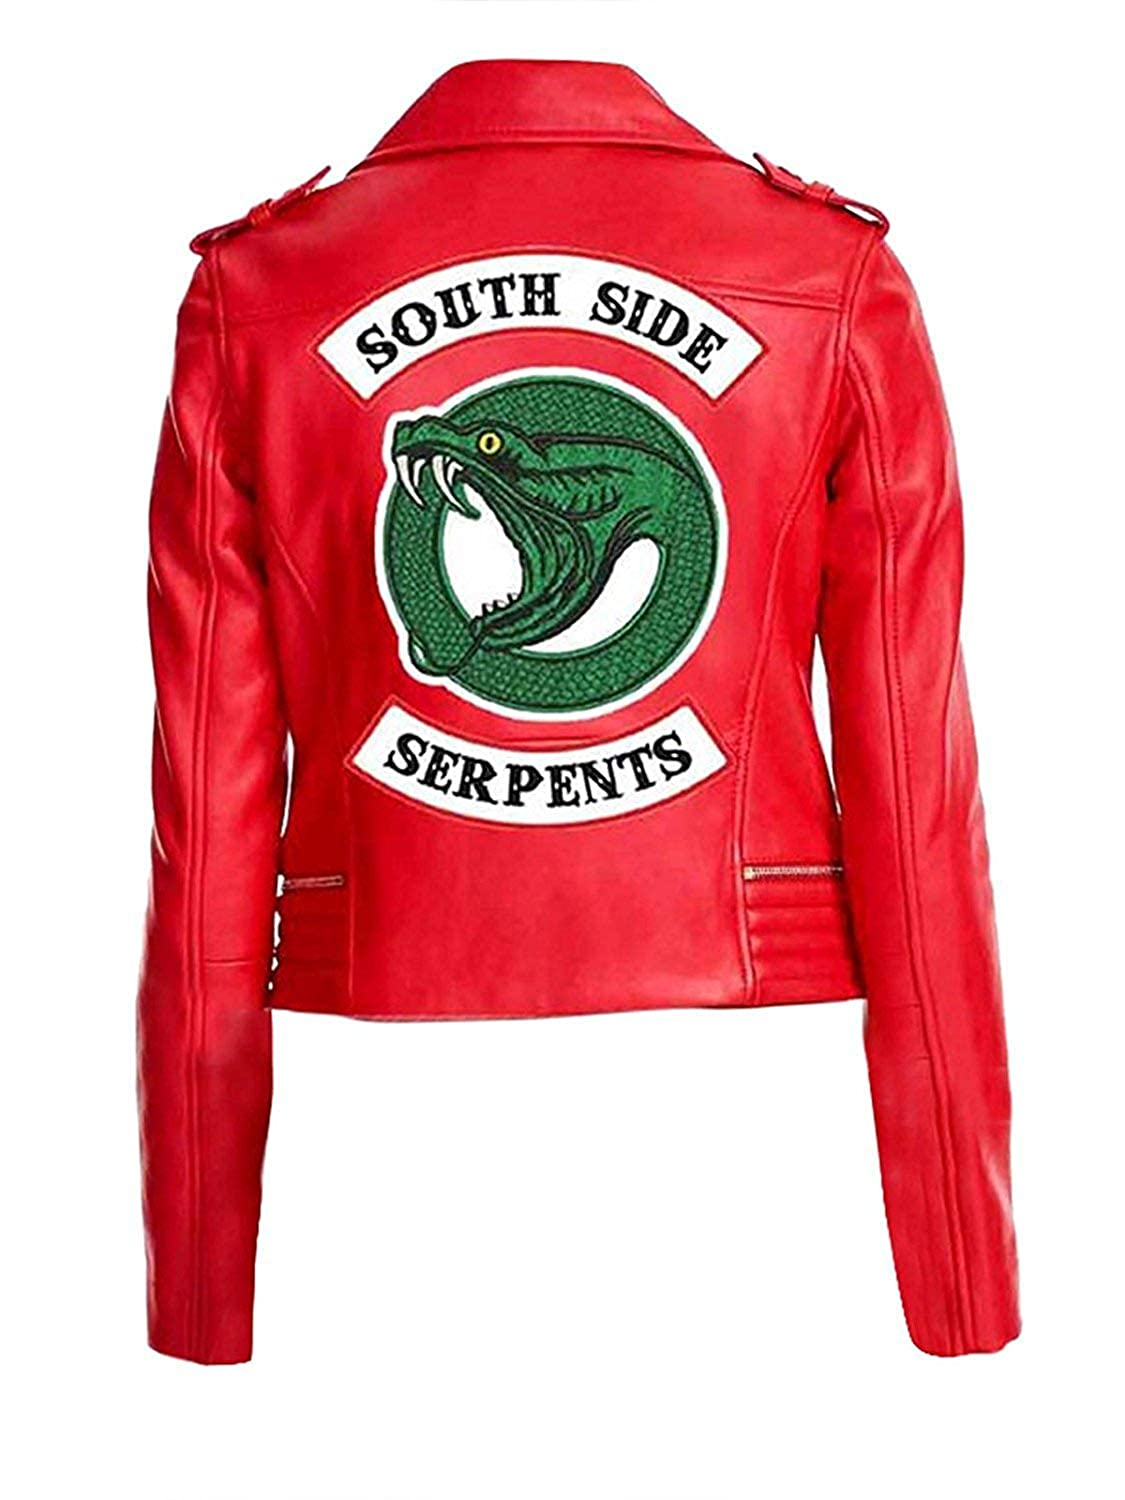 Cling Outfitters Womens Red Real Leather Jacket with Snake Logo